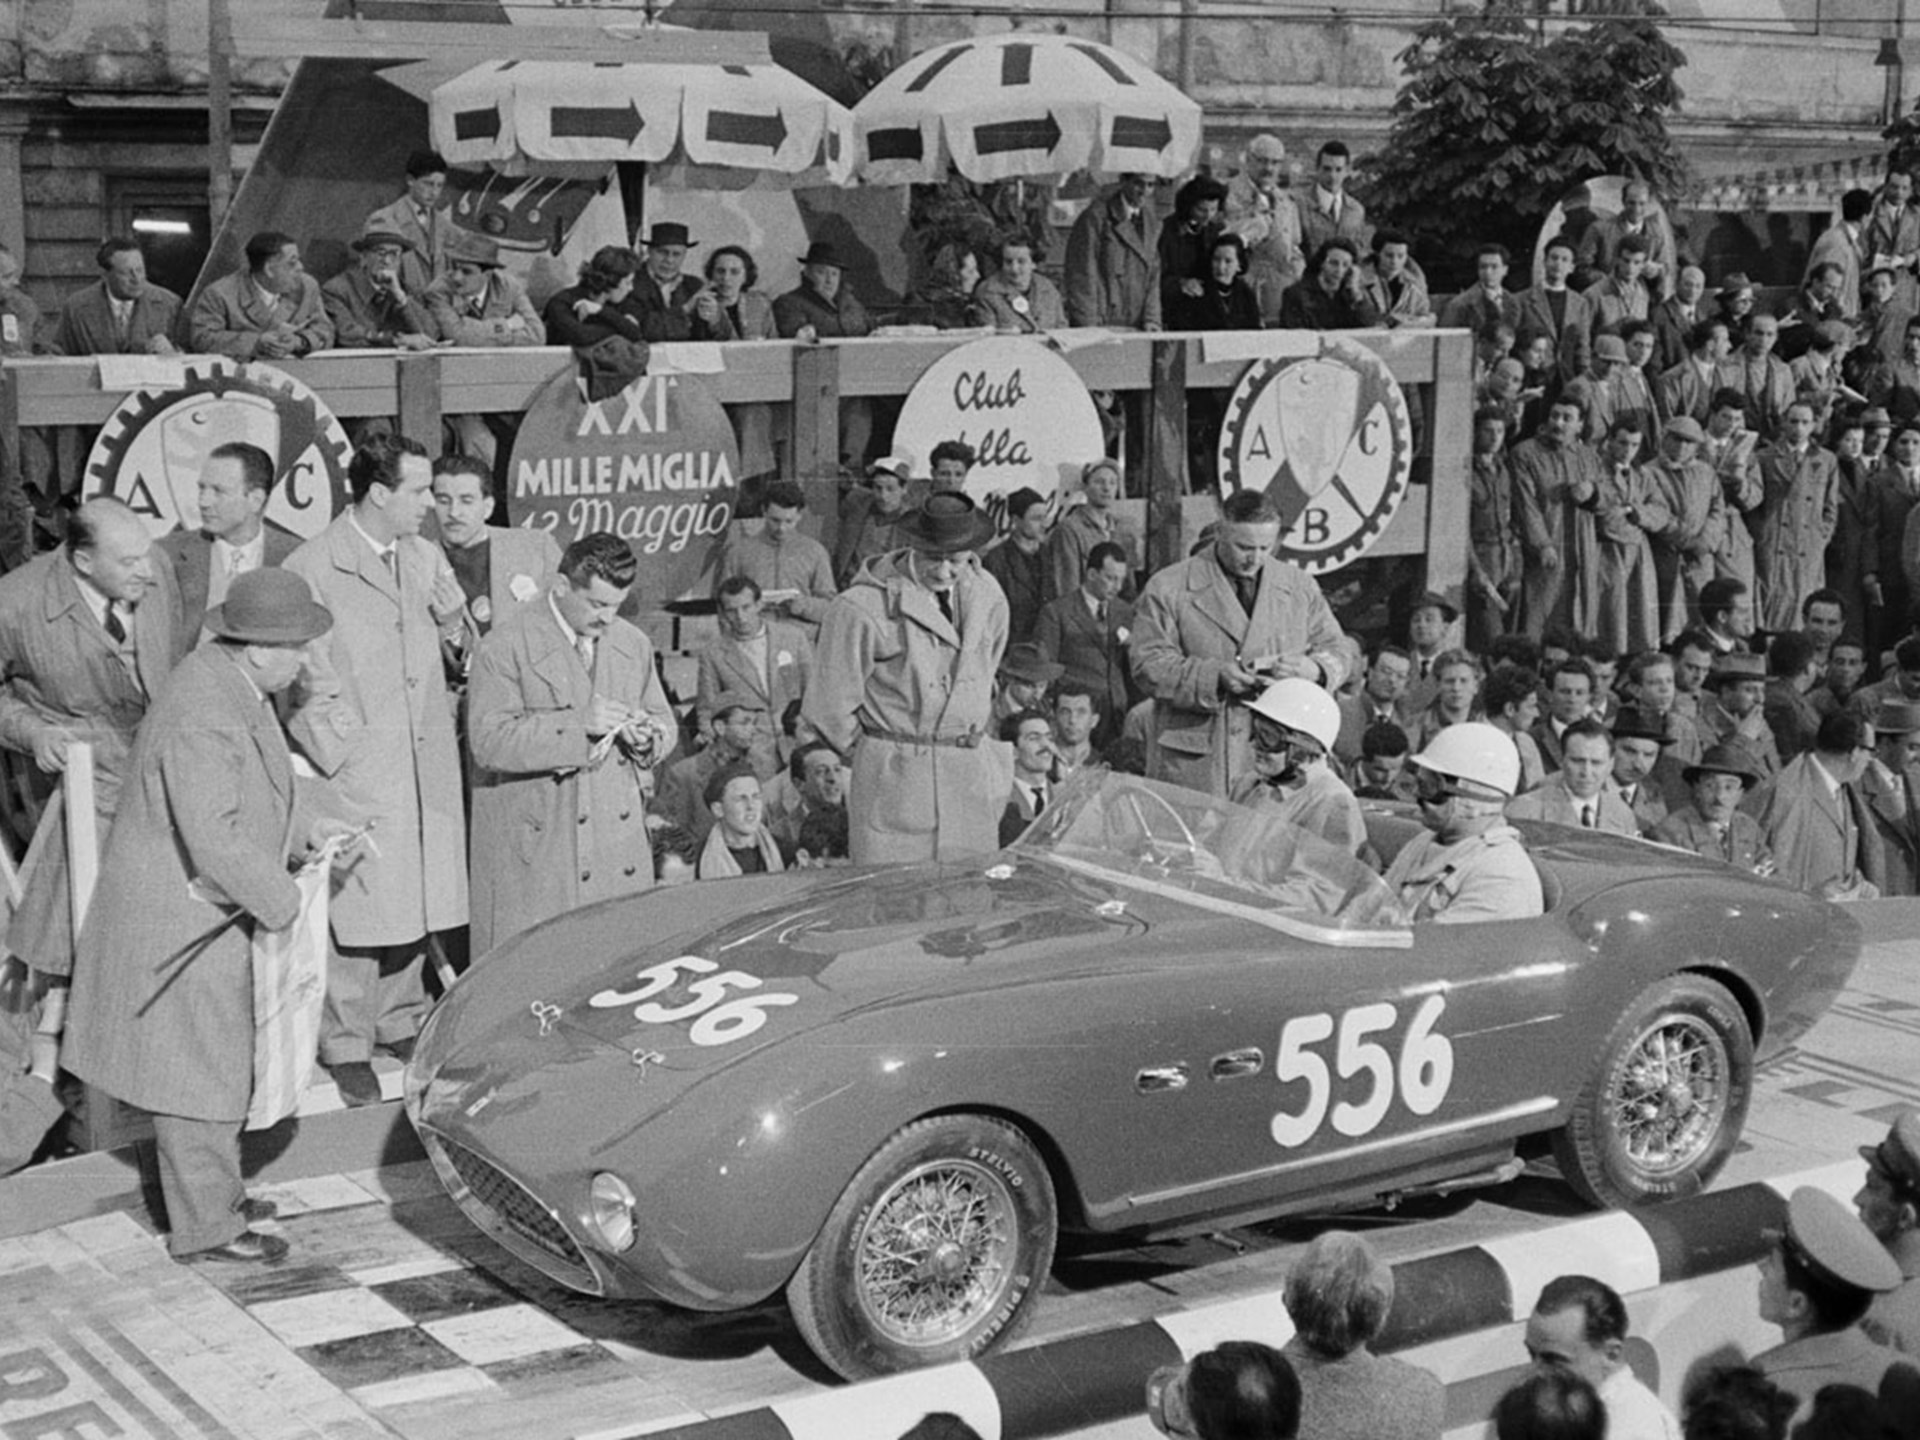 Chassis 0272 M with Emmanuel de Graffenried and Giannino Parravicini at the start of the 1954 Mille Miglia.